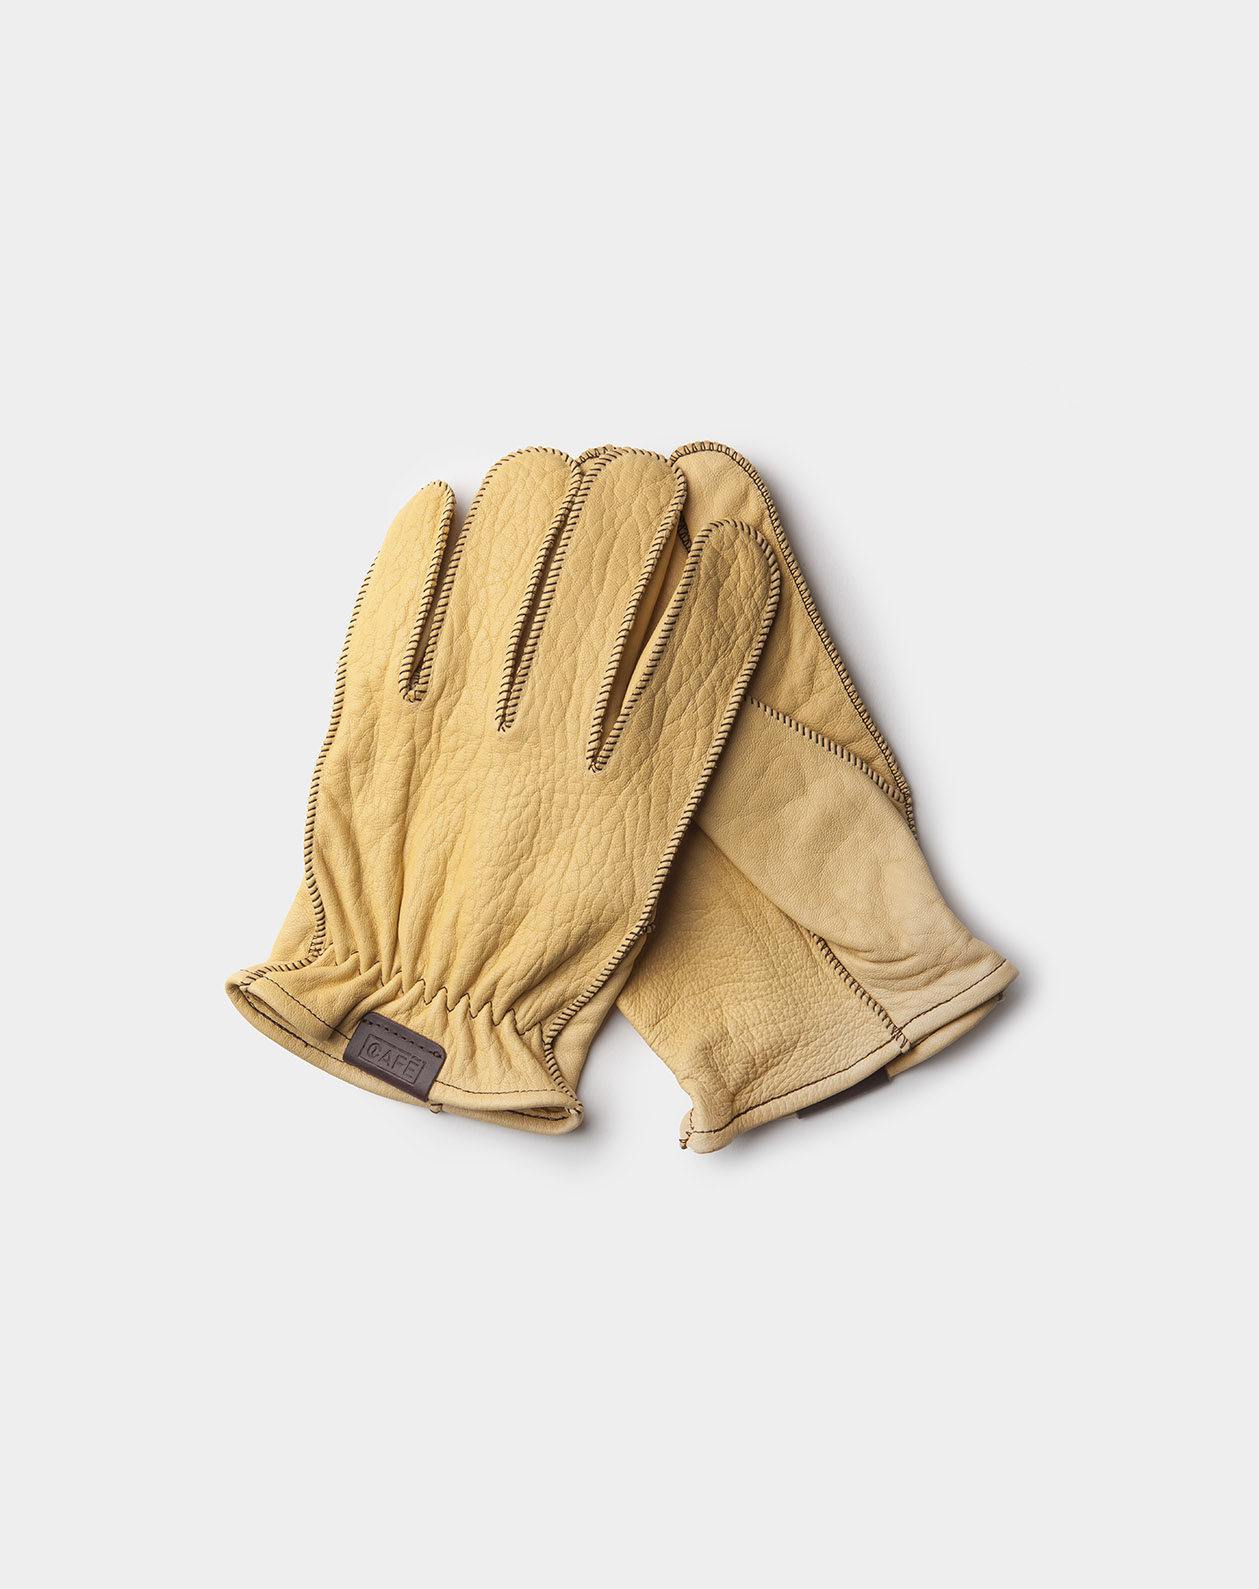 driving gloves cream handcrafted in Spain